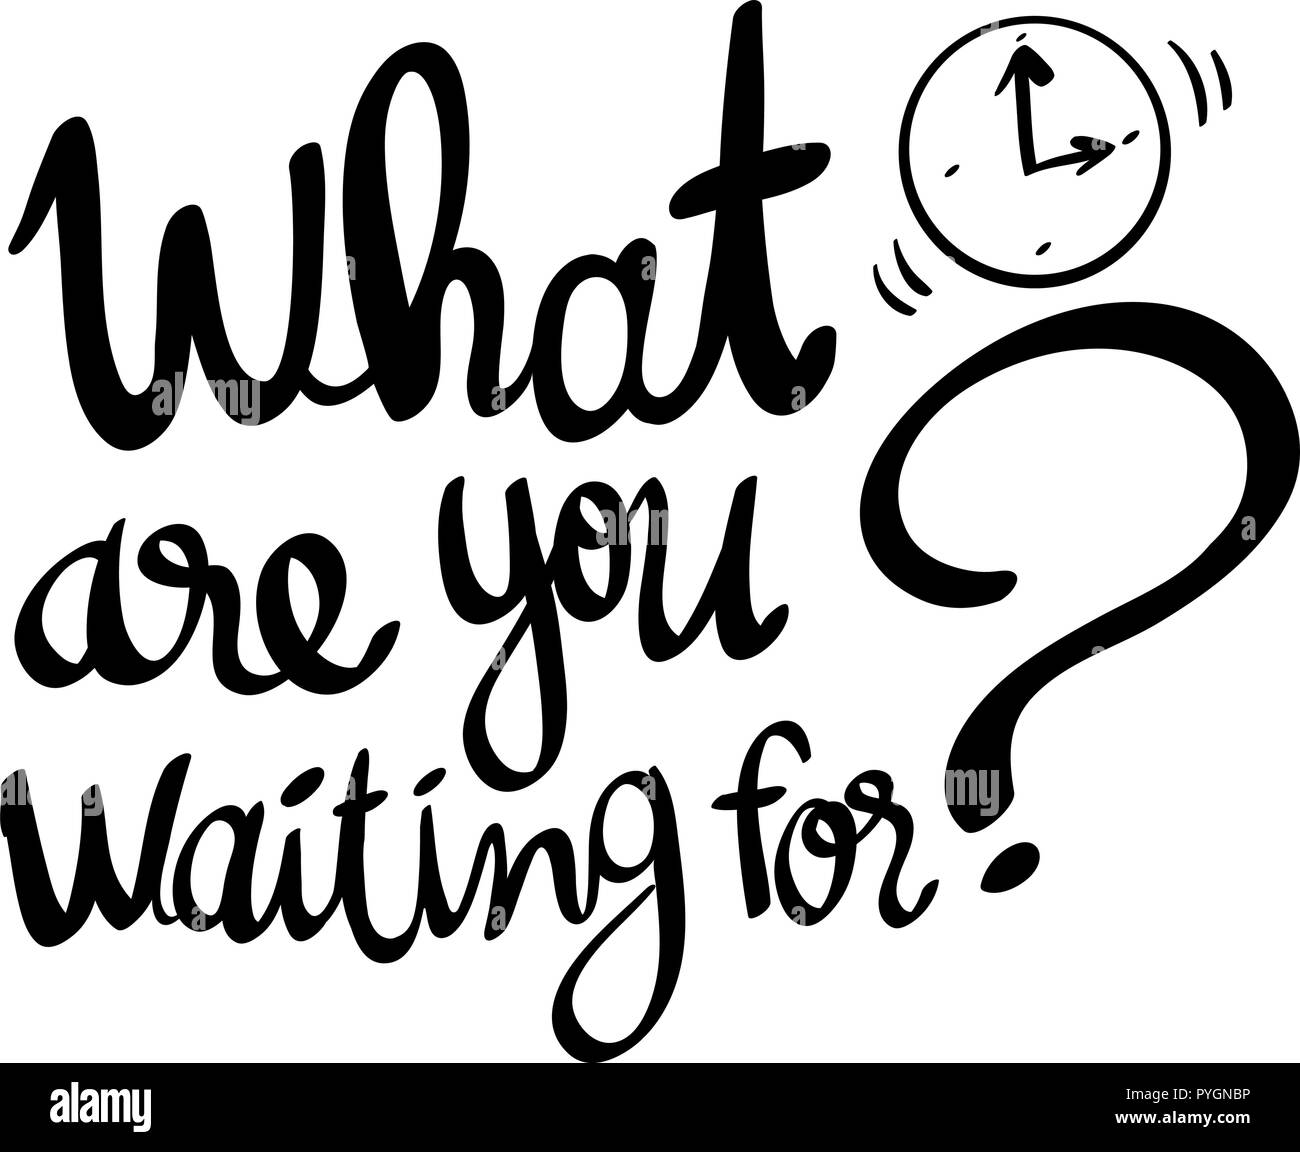 Word expression for what are you waiting for illustration - Stock Vector